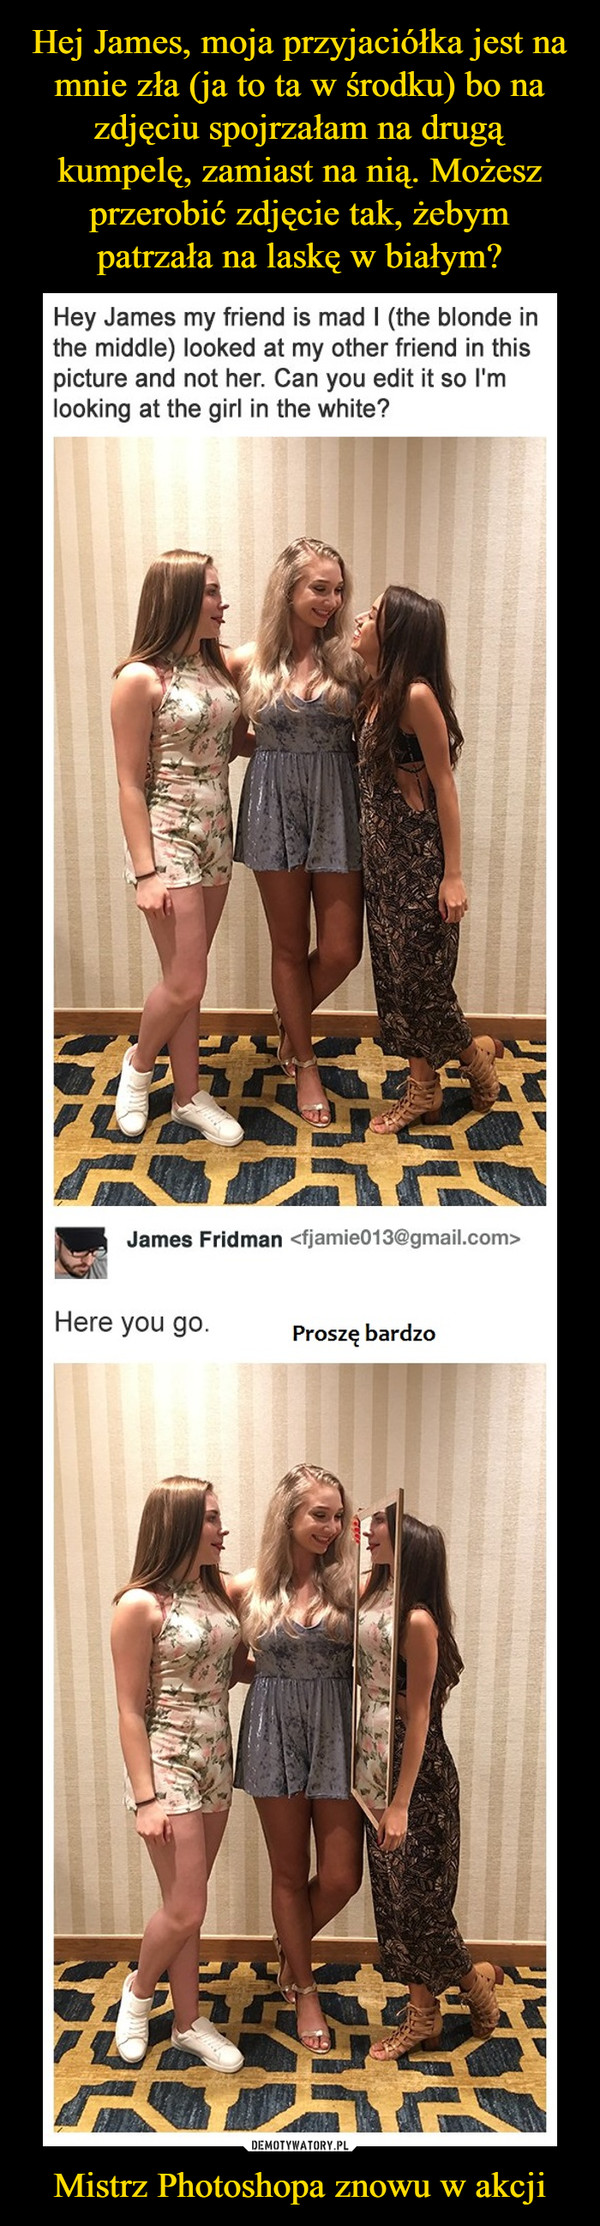 Mistrz Photoshopa znowu w akcji –  Hey James my friend is mad I (the blonde in the middle) looked at my other friend in this picture and not her. Can you edit it so I'm looking at the girl in the white? James FridmanHere you go.